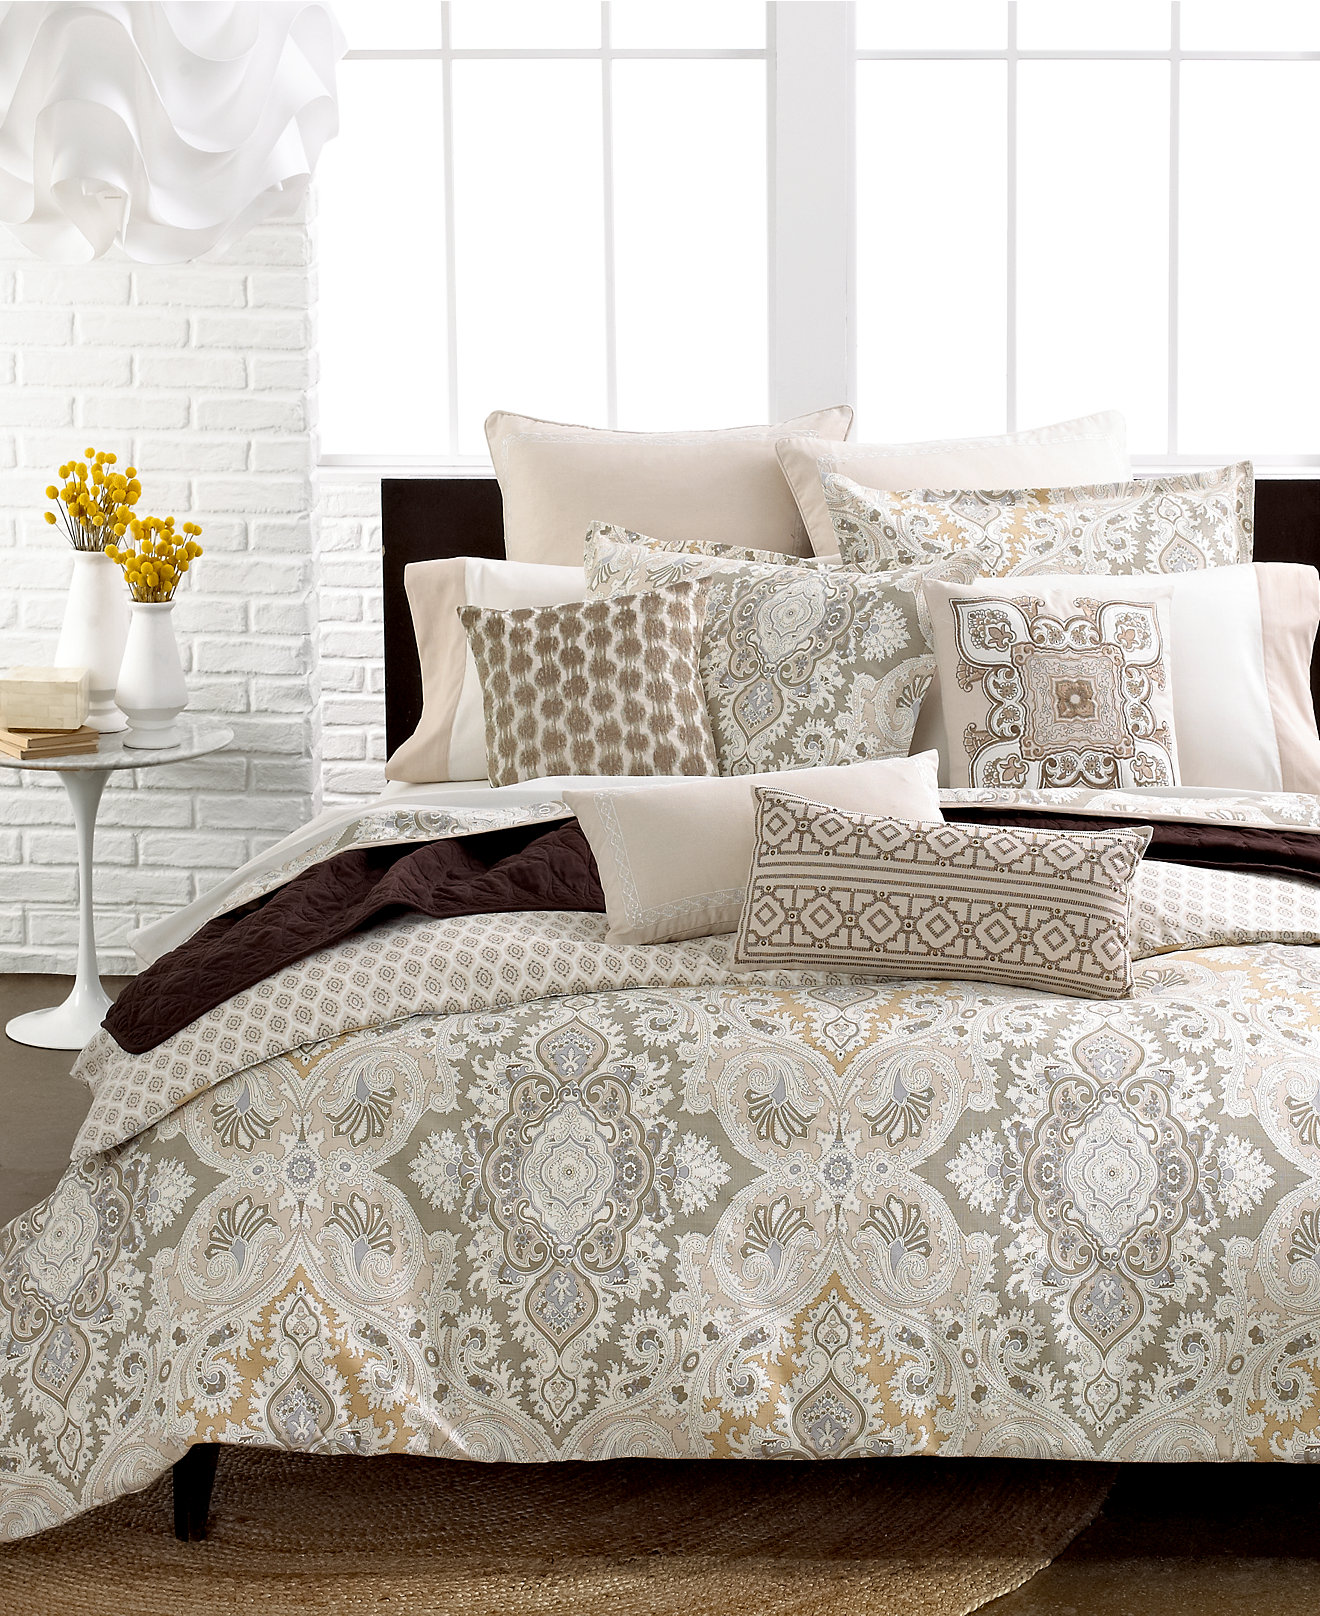 bedding collections  macy's - echo odyssey bedding collection  thread count  cotton